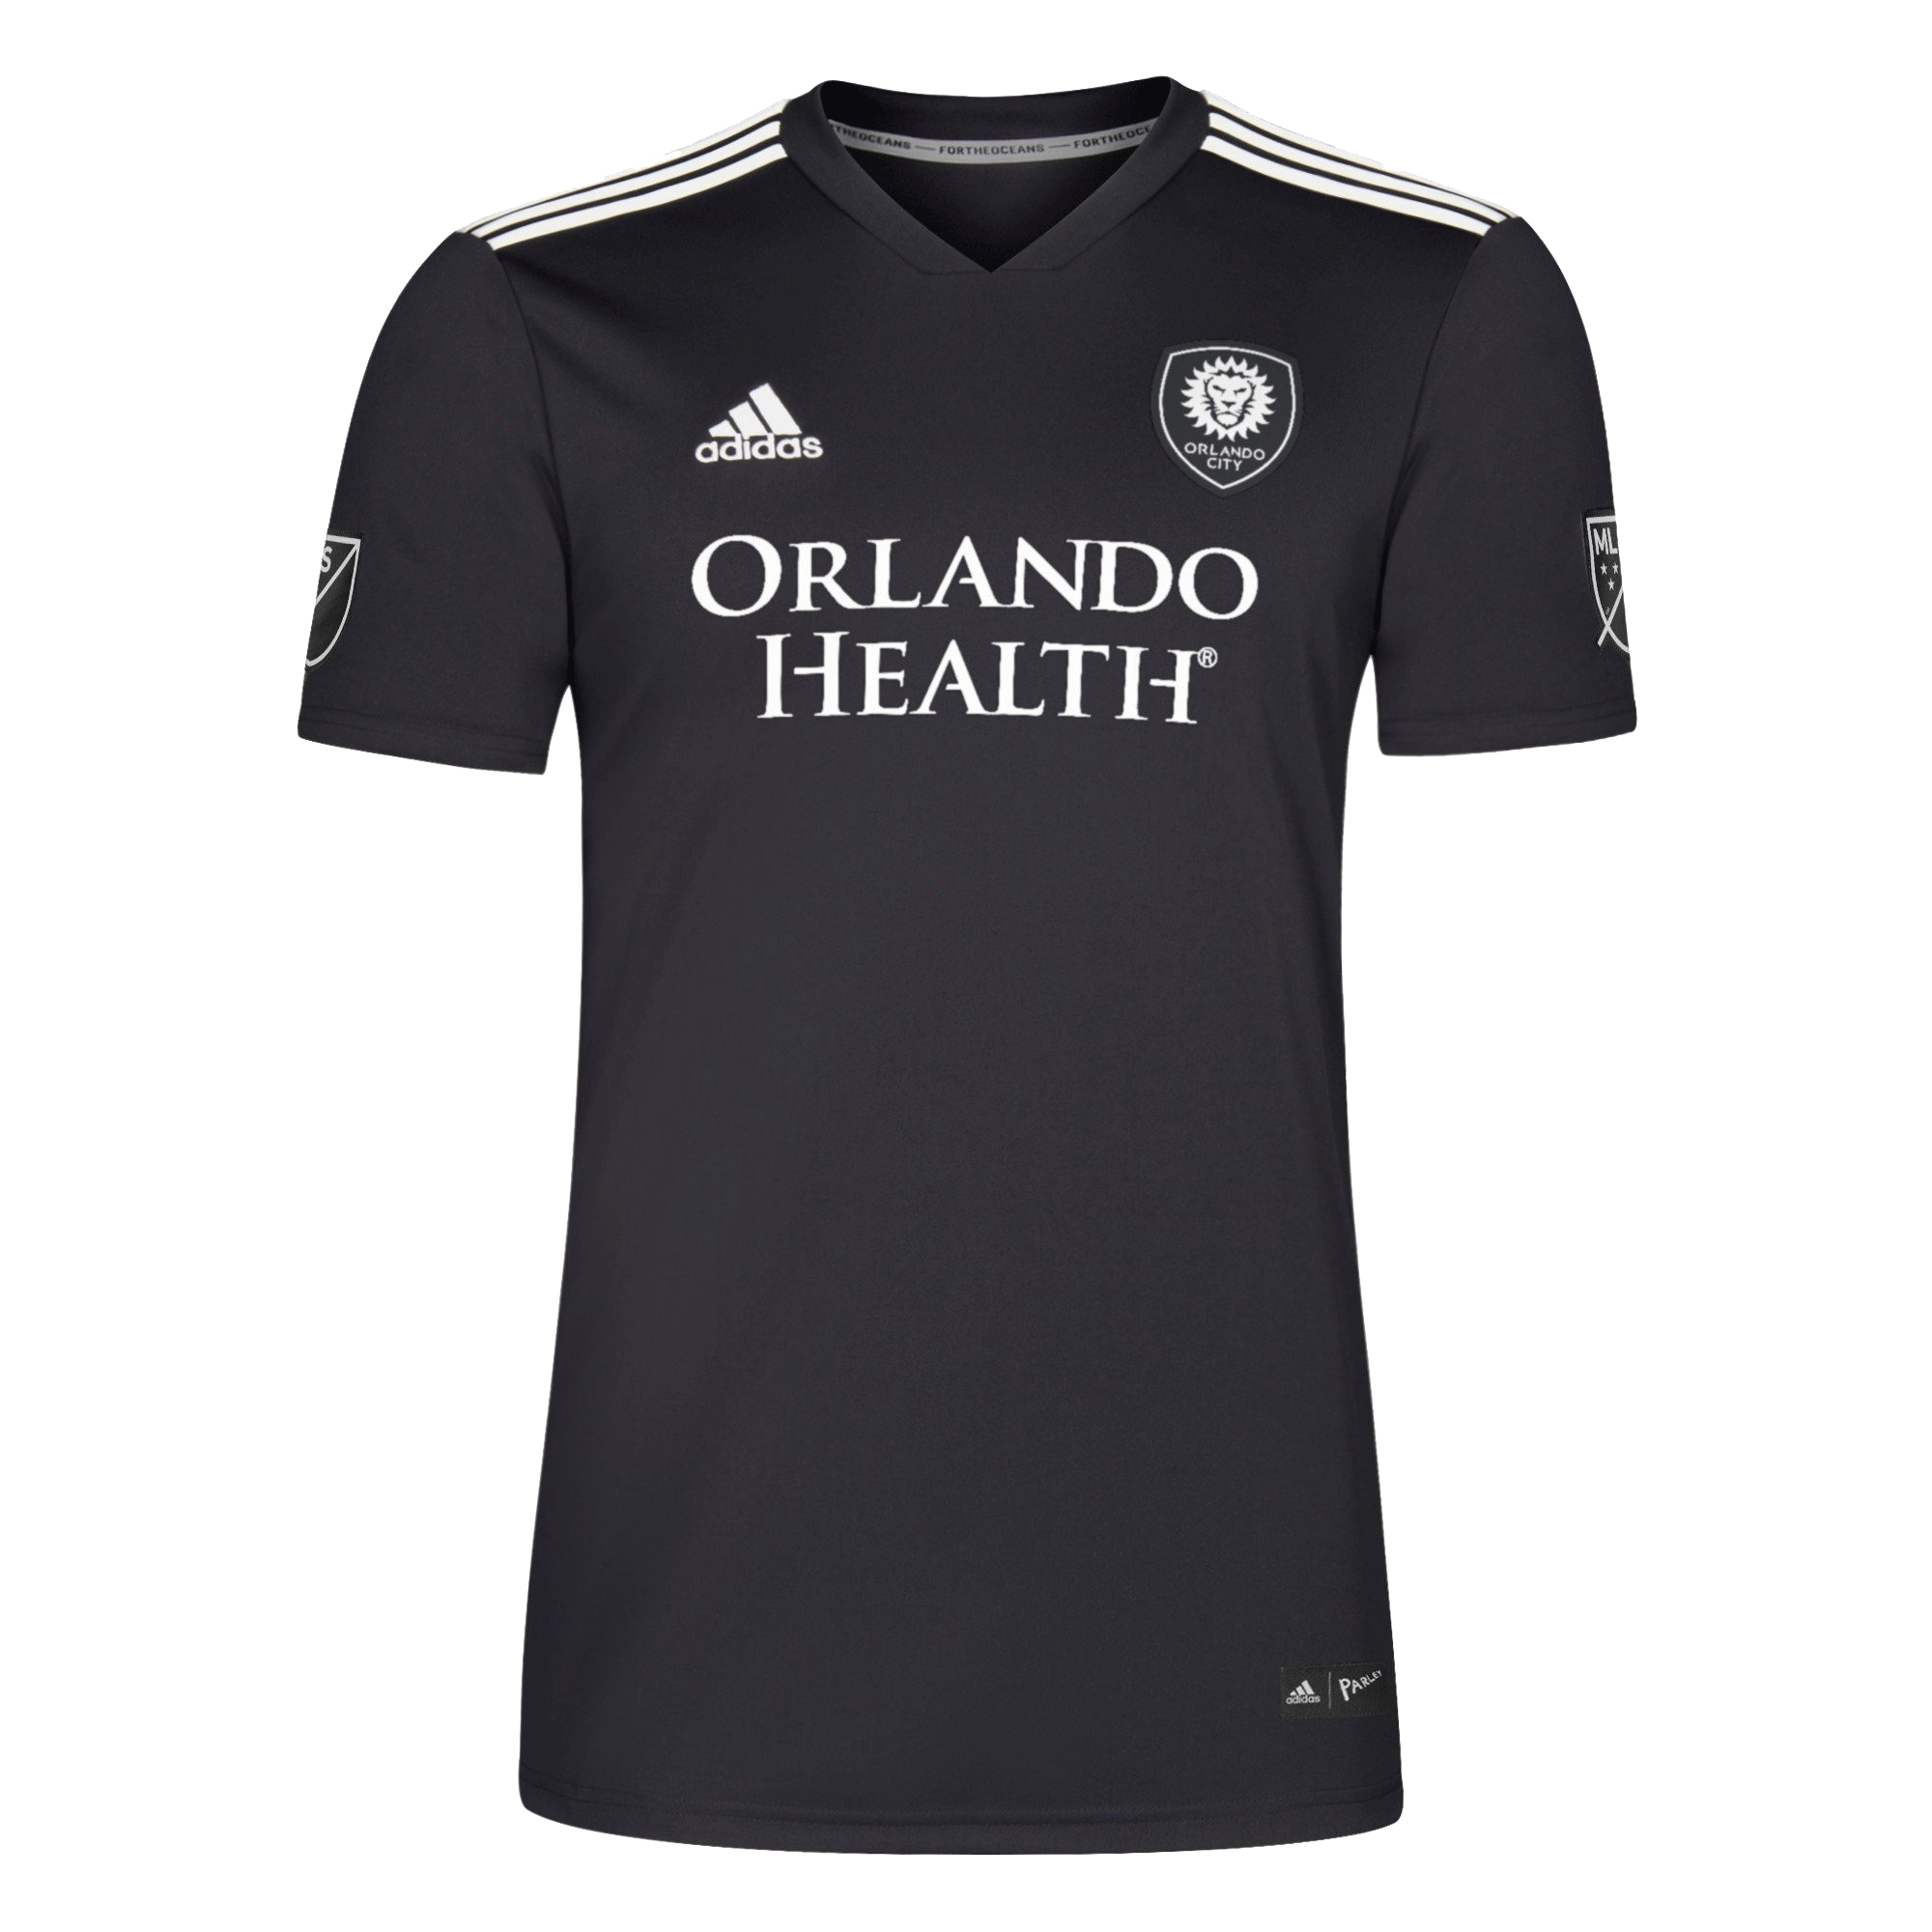 0f850013c53 Orlando City SC to wear special black jersey against San Jose Earthquakes